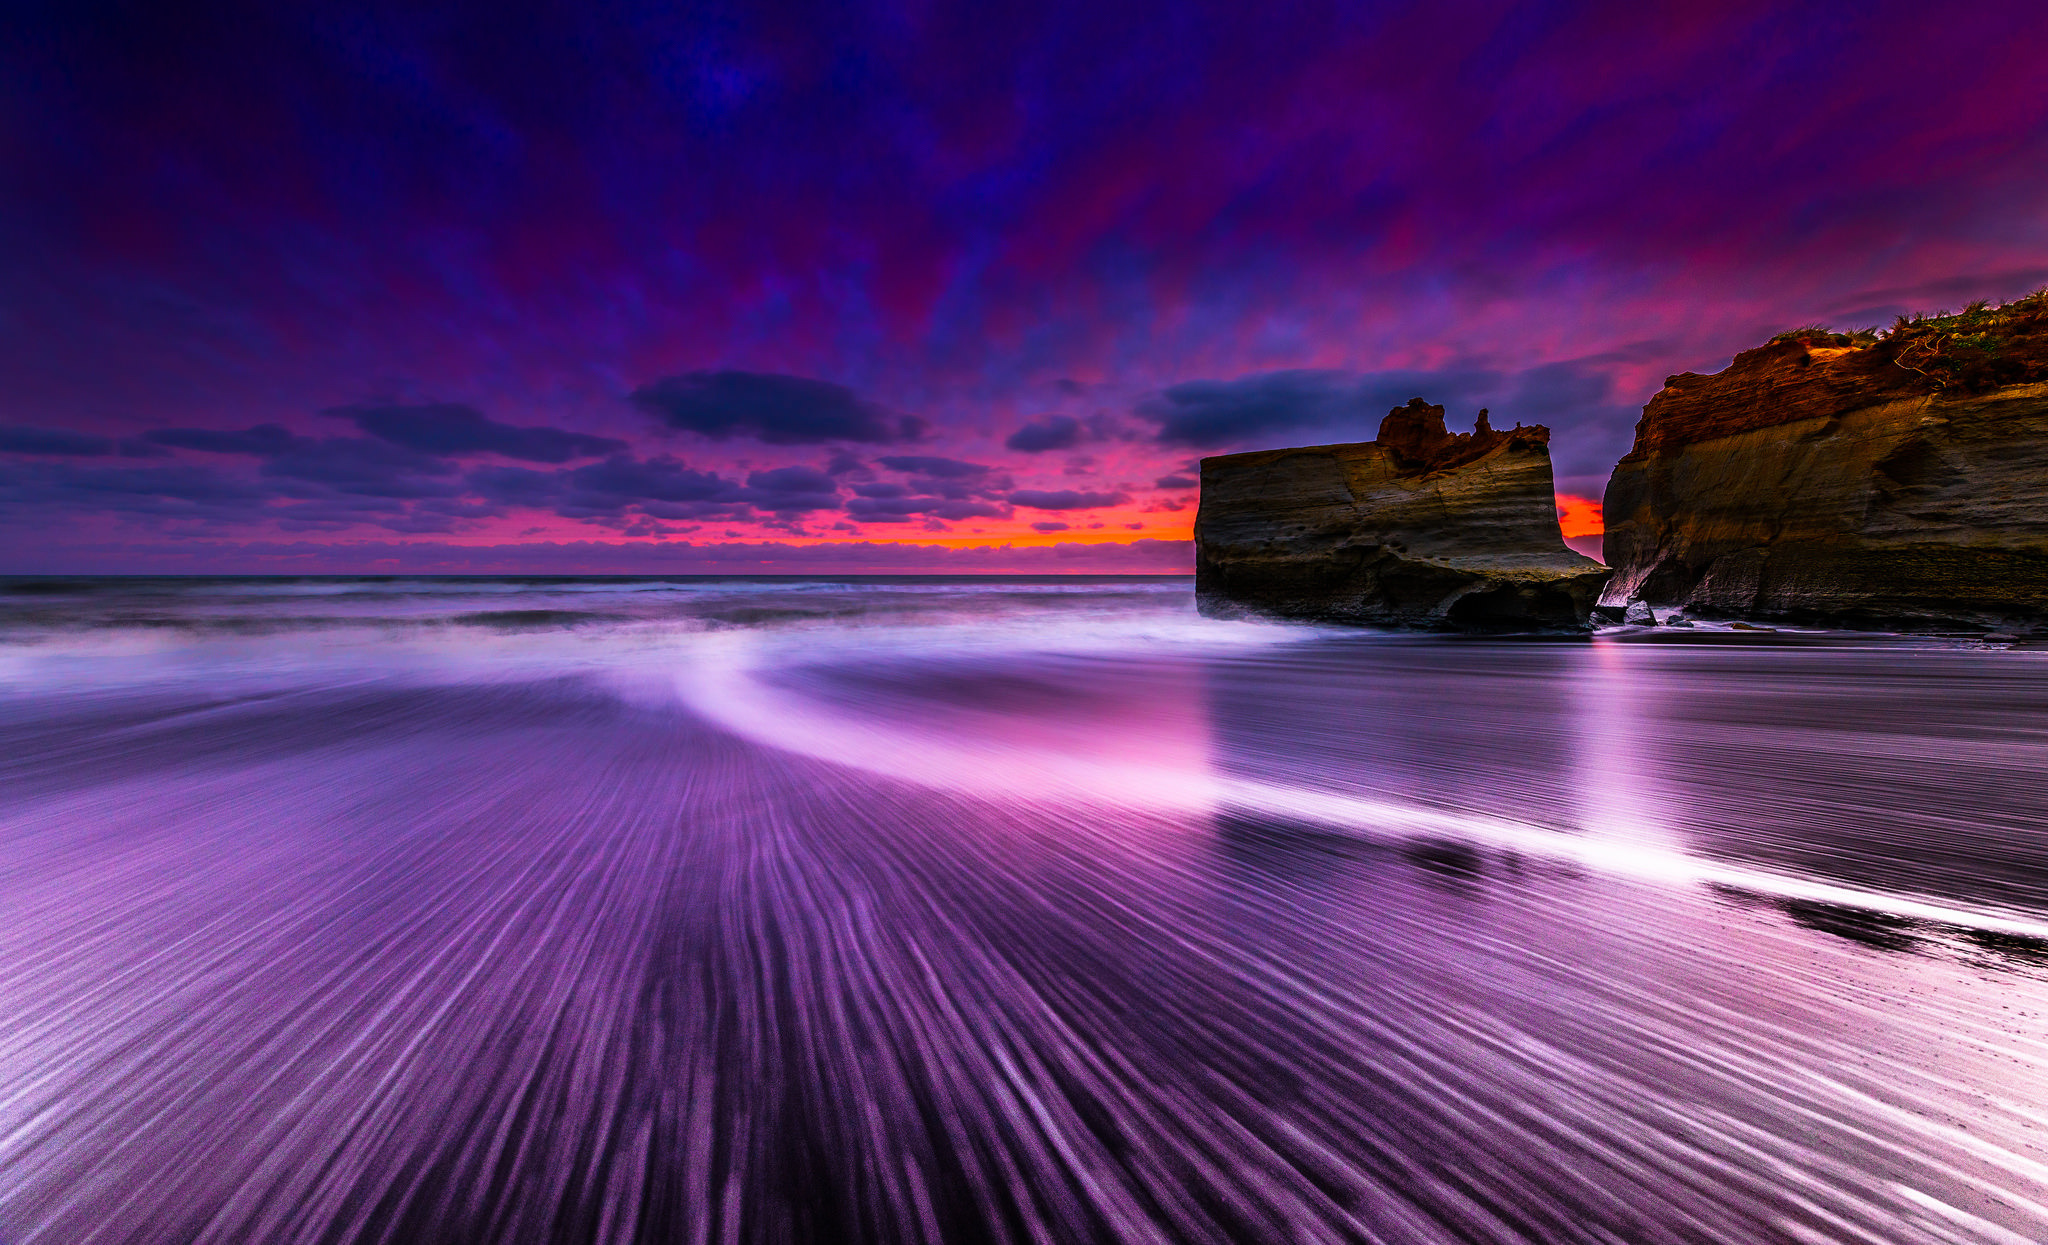 Earth Sunset Sky Purple Blue Cloud Beach Ocean Sea Rock Horizon 2048x1245